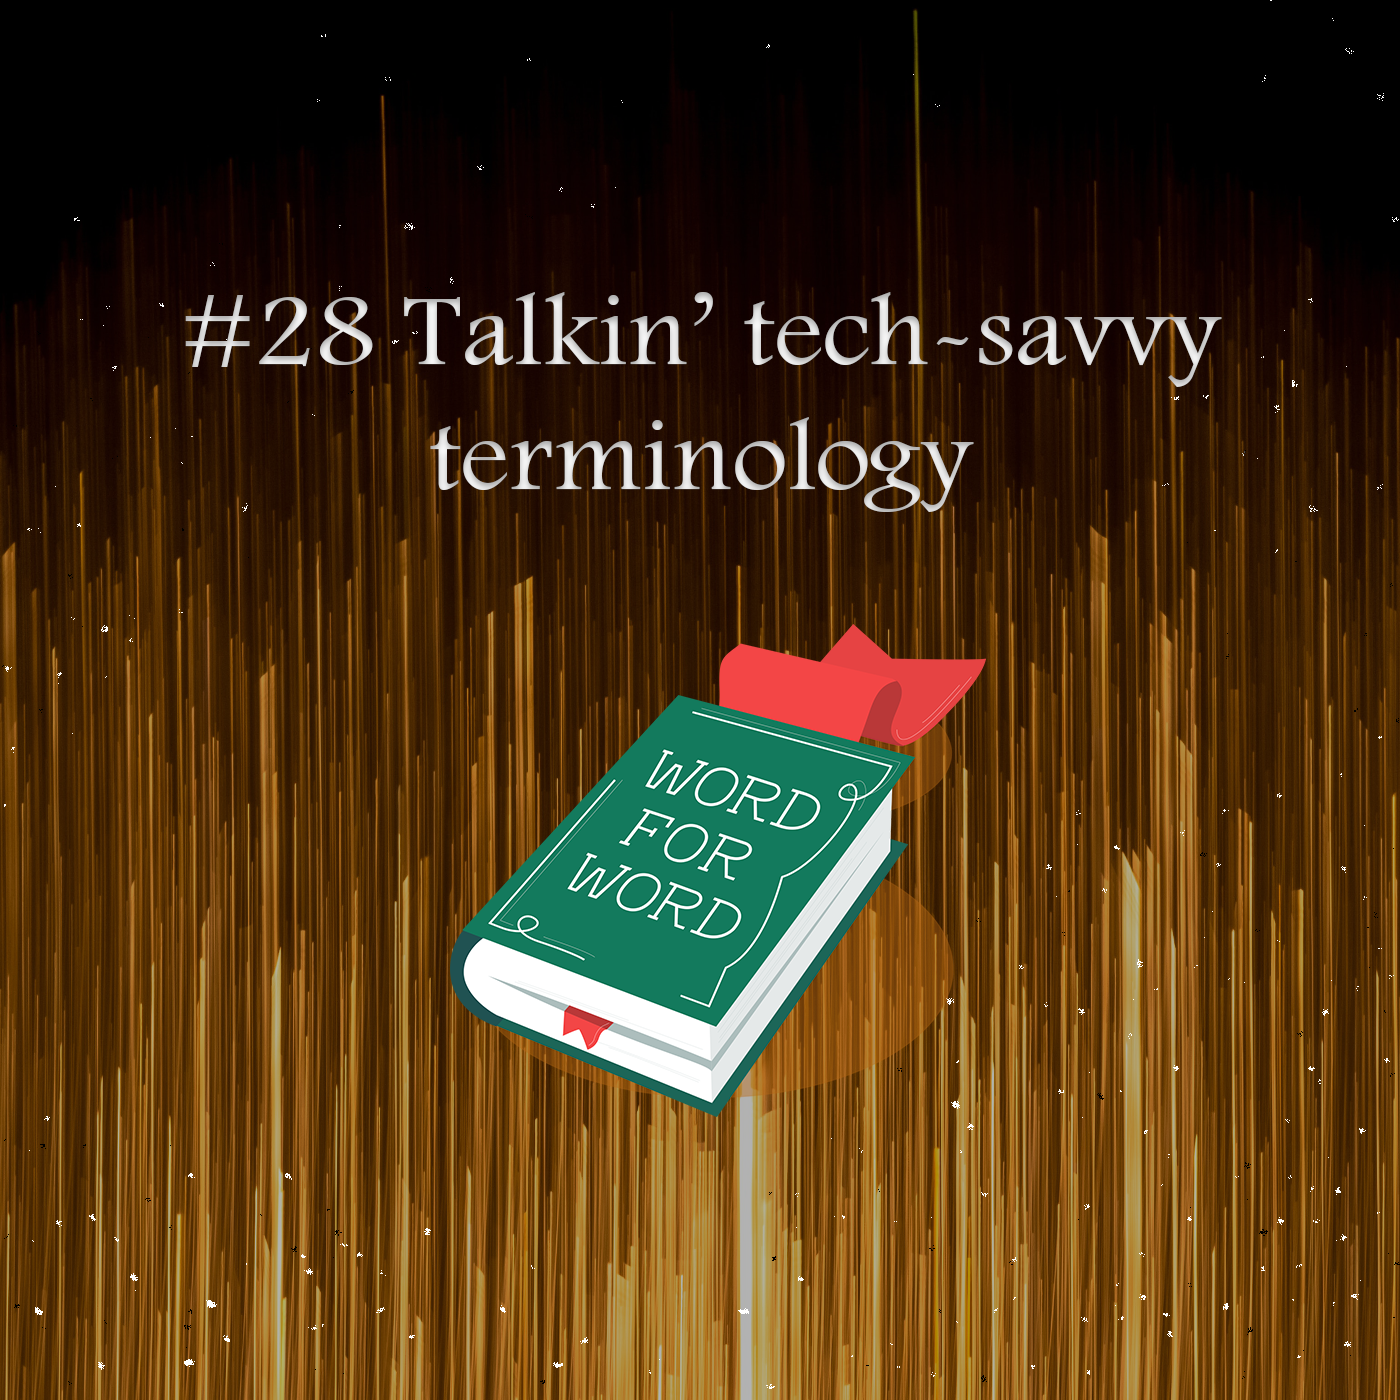 Gold and black stripped pattern and text: #28 Talkin' tech-savvy terminology